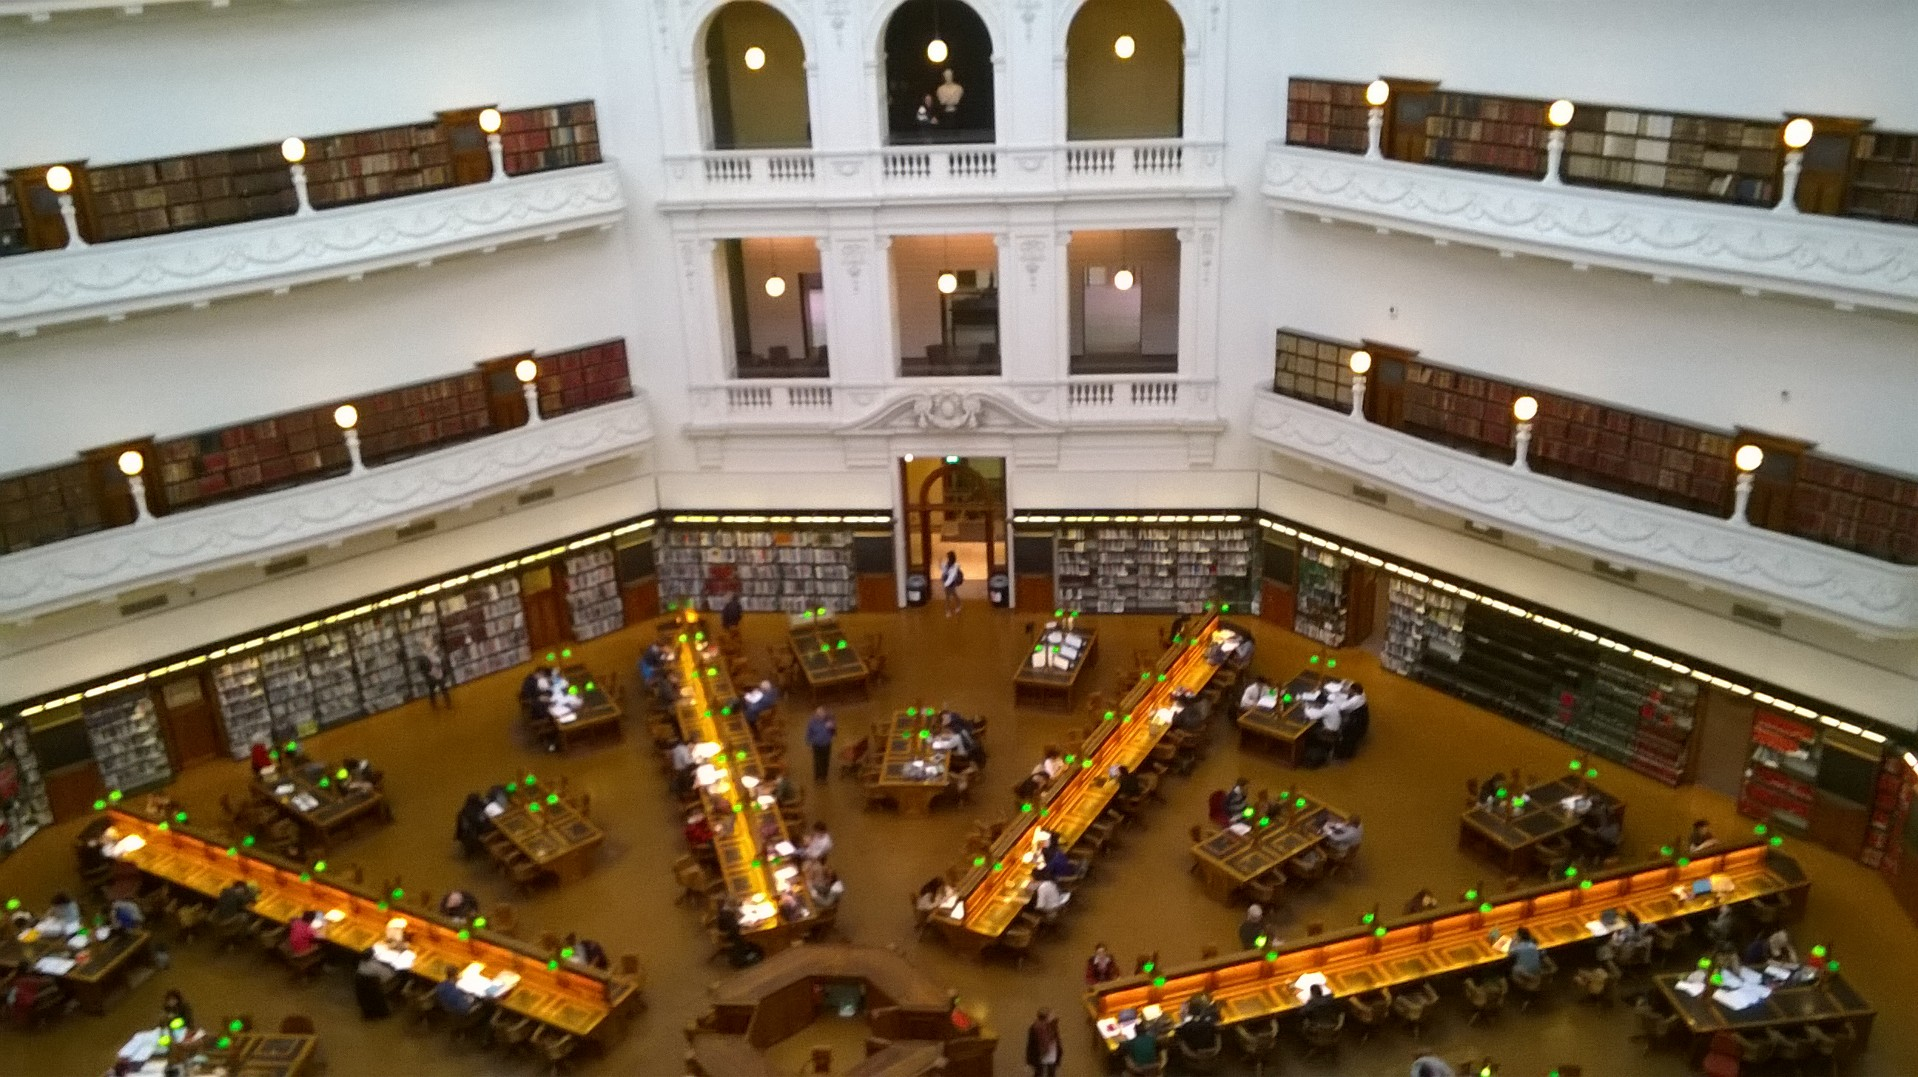 Victoria State Library, Melbourne, Australia by Val Mills